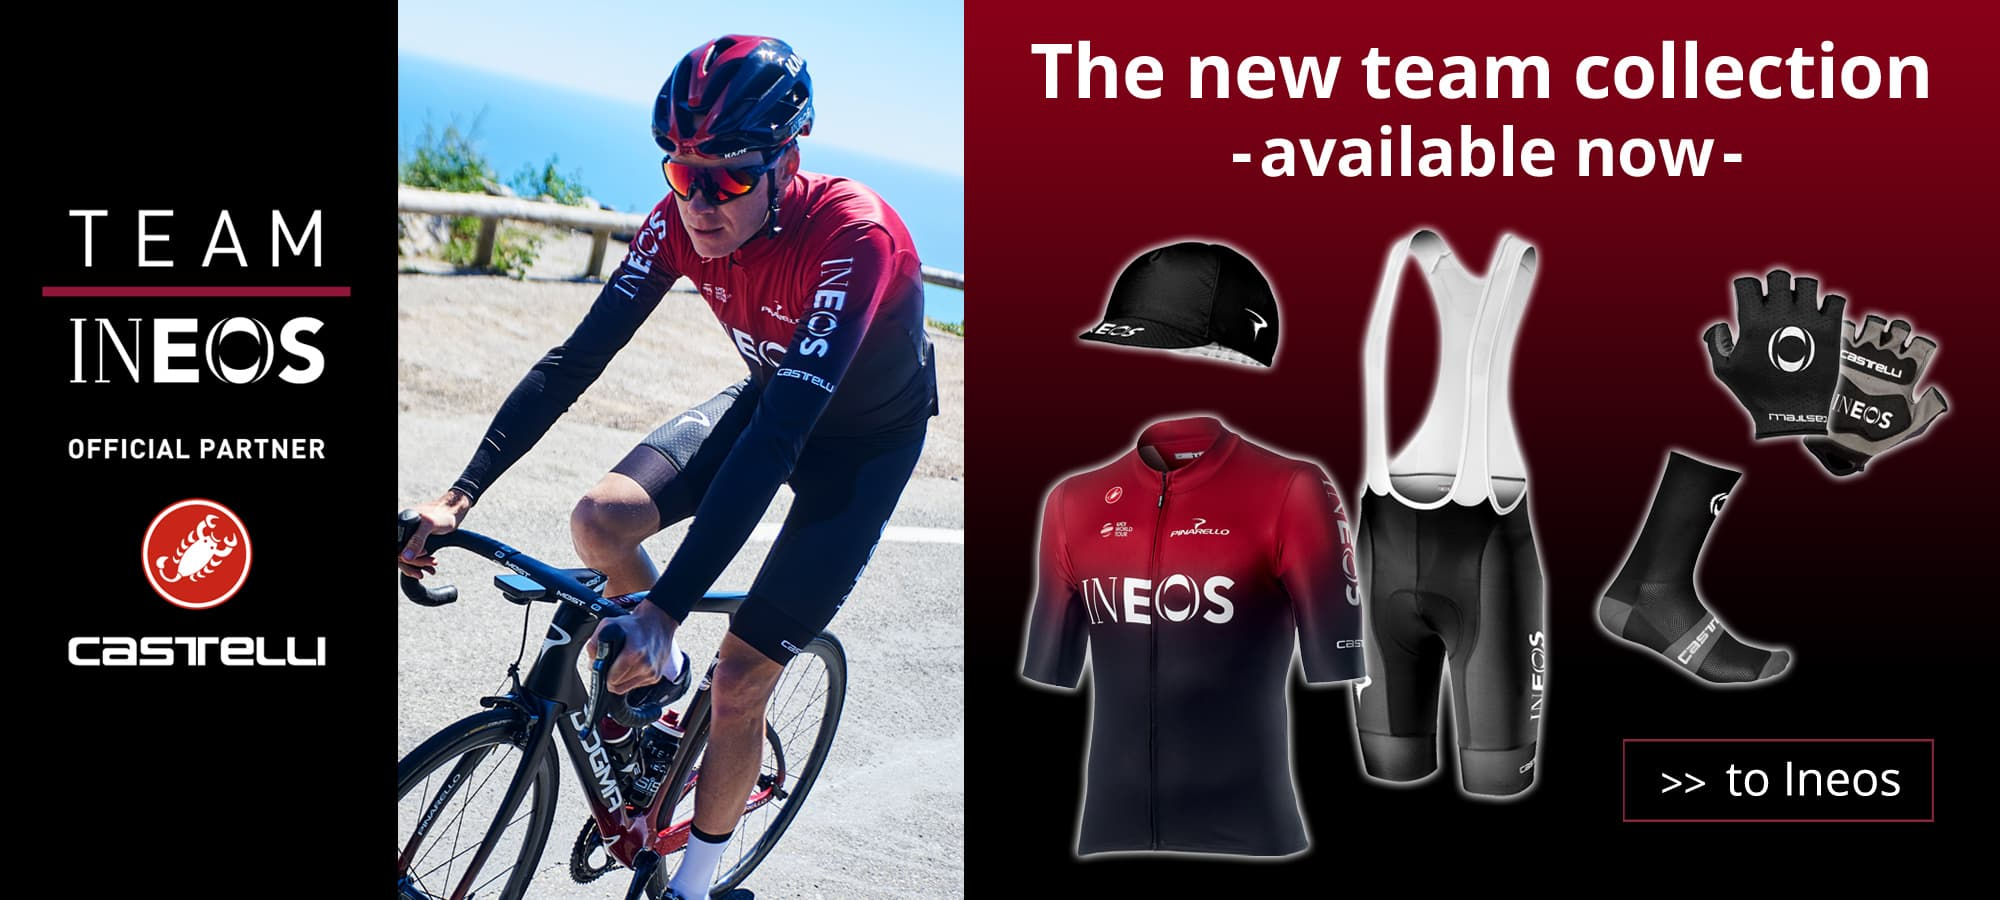 Team Ineos - the team collection 2019